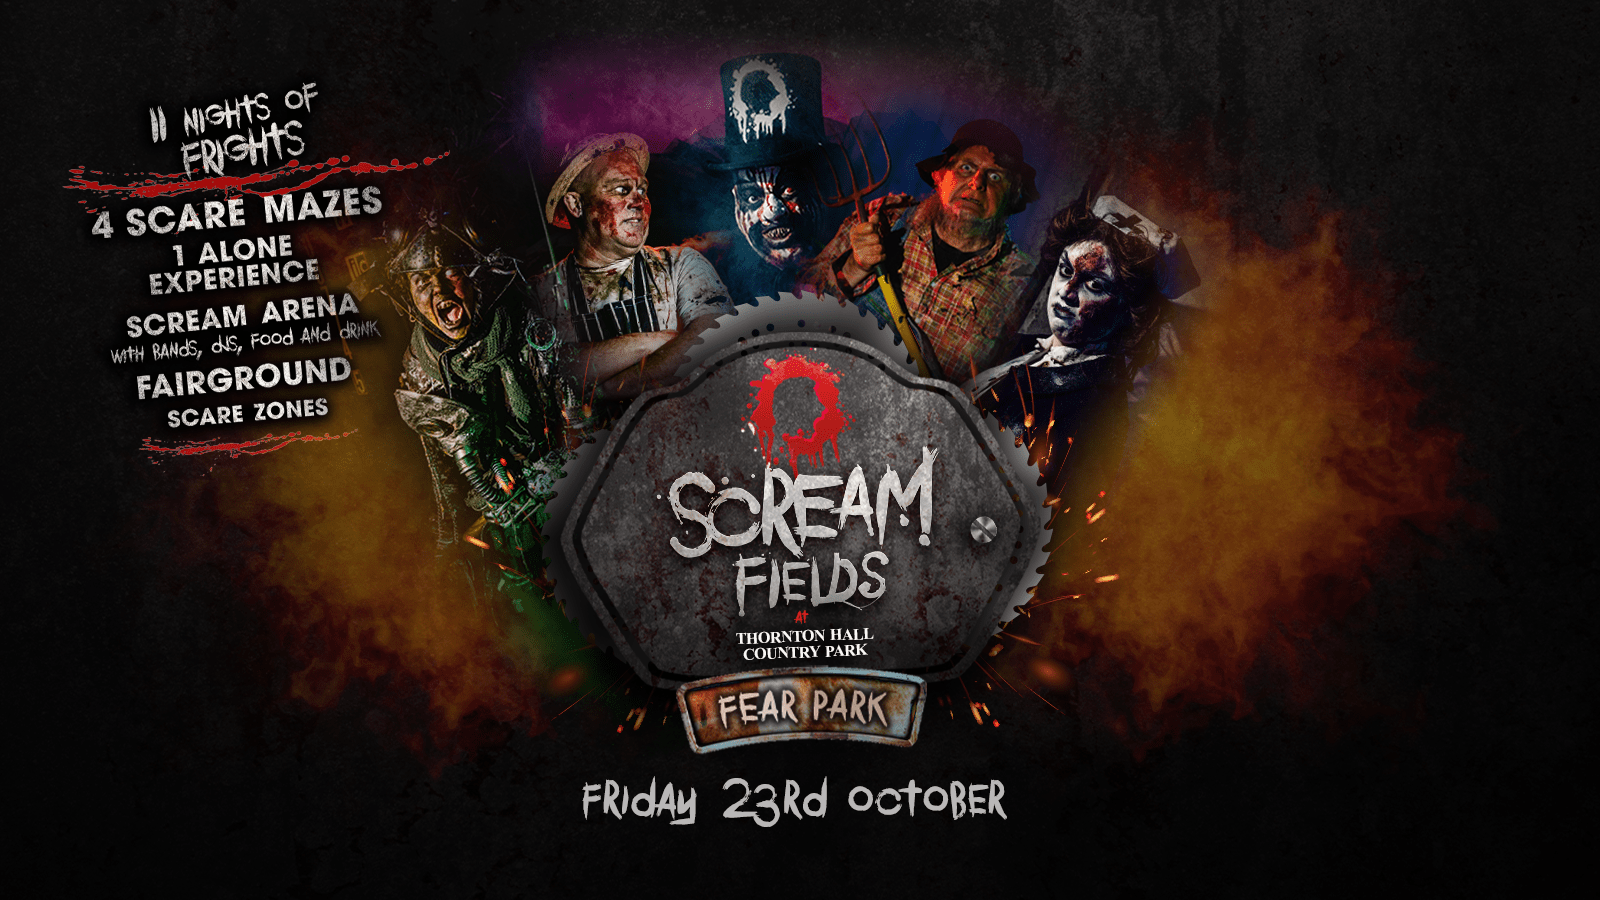 7.30PM – Screamfields: Friday 23rd October 2020